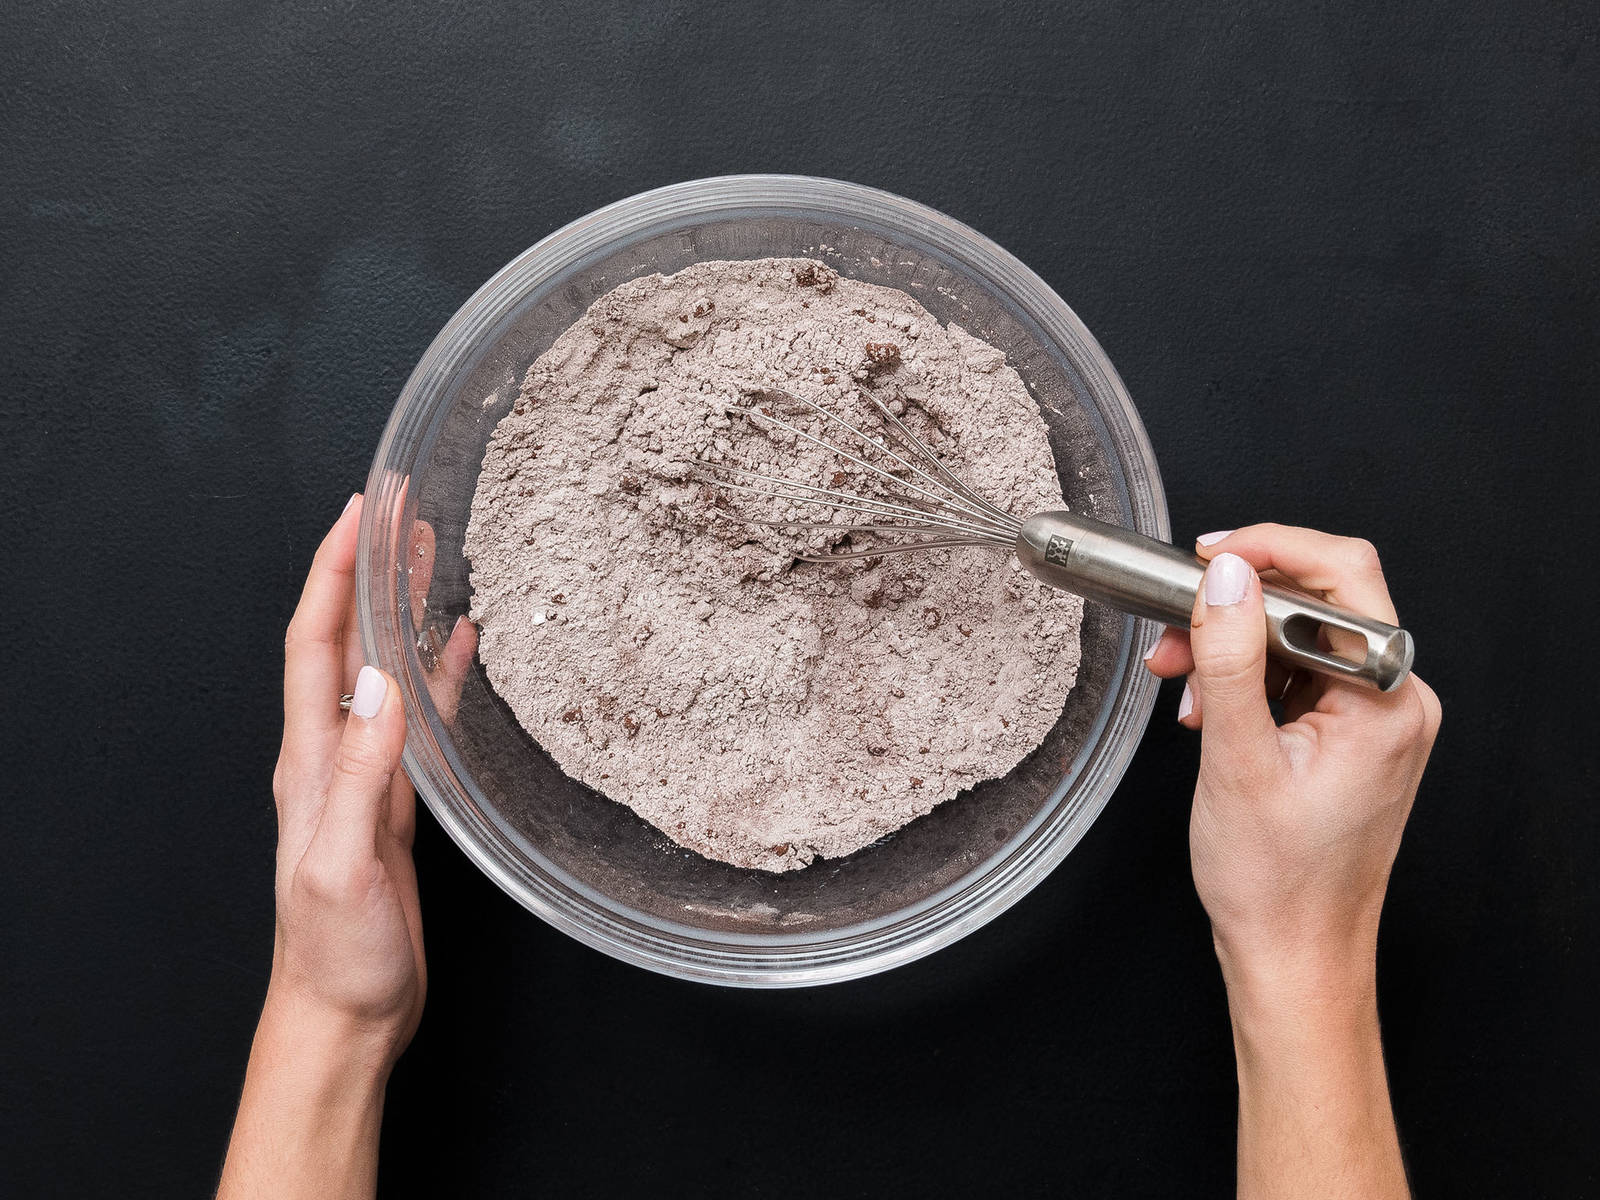 Add flour, cocoa powder, baking powder, and salt to a bowl and stir to combine.